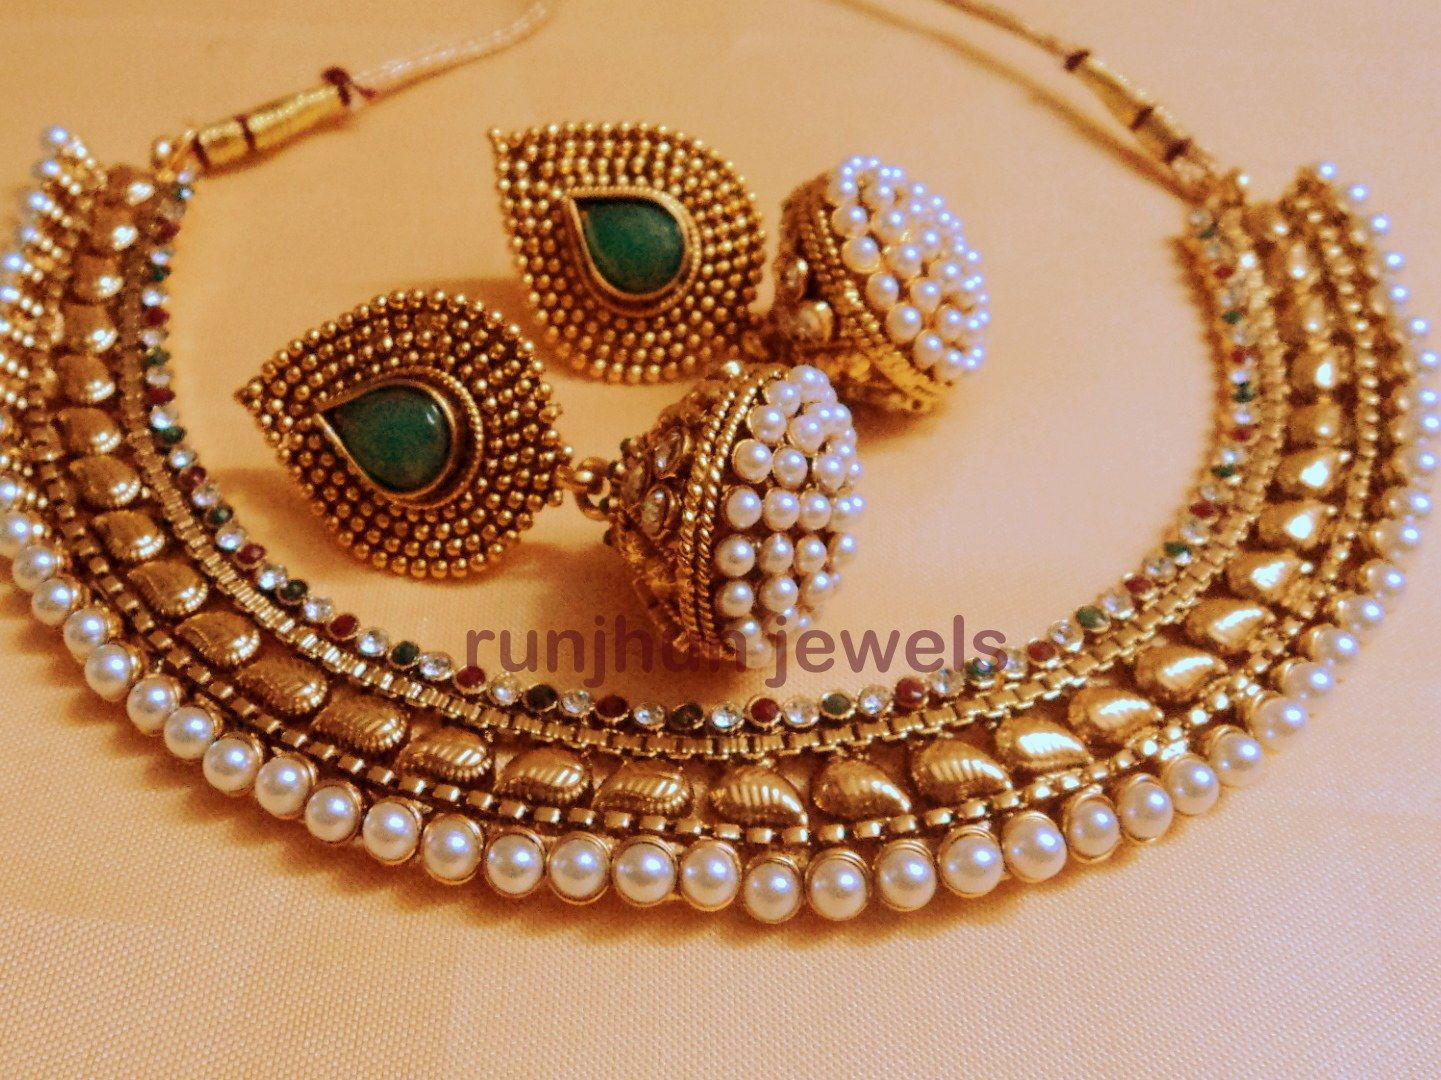 Gold necklace designs with price in rupees jewelry gallery - Pearl Polki Choker Jewellery